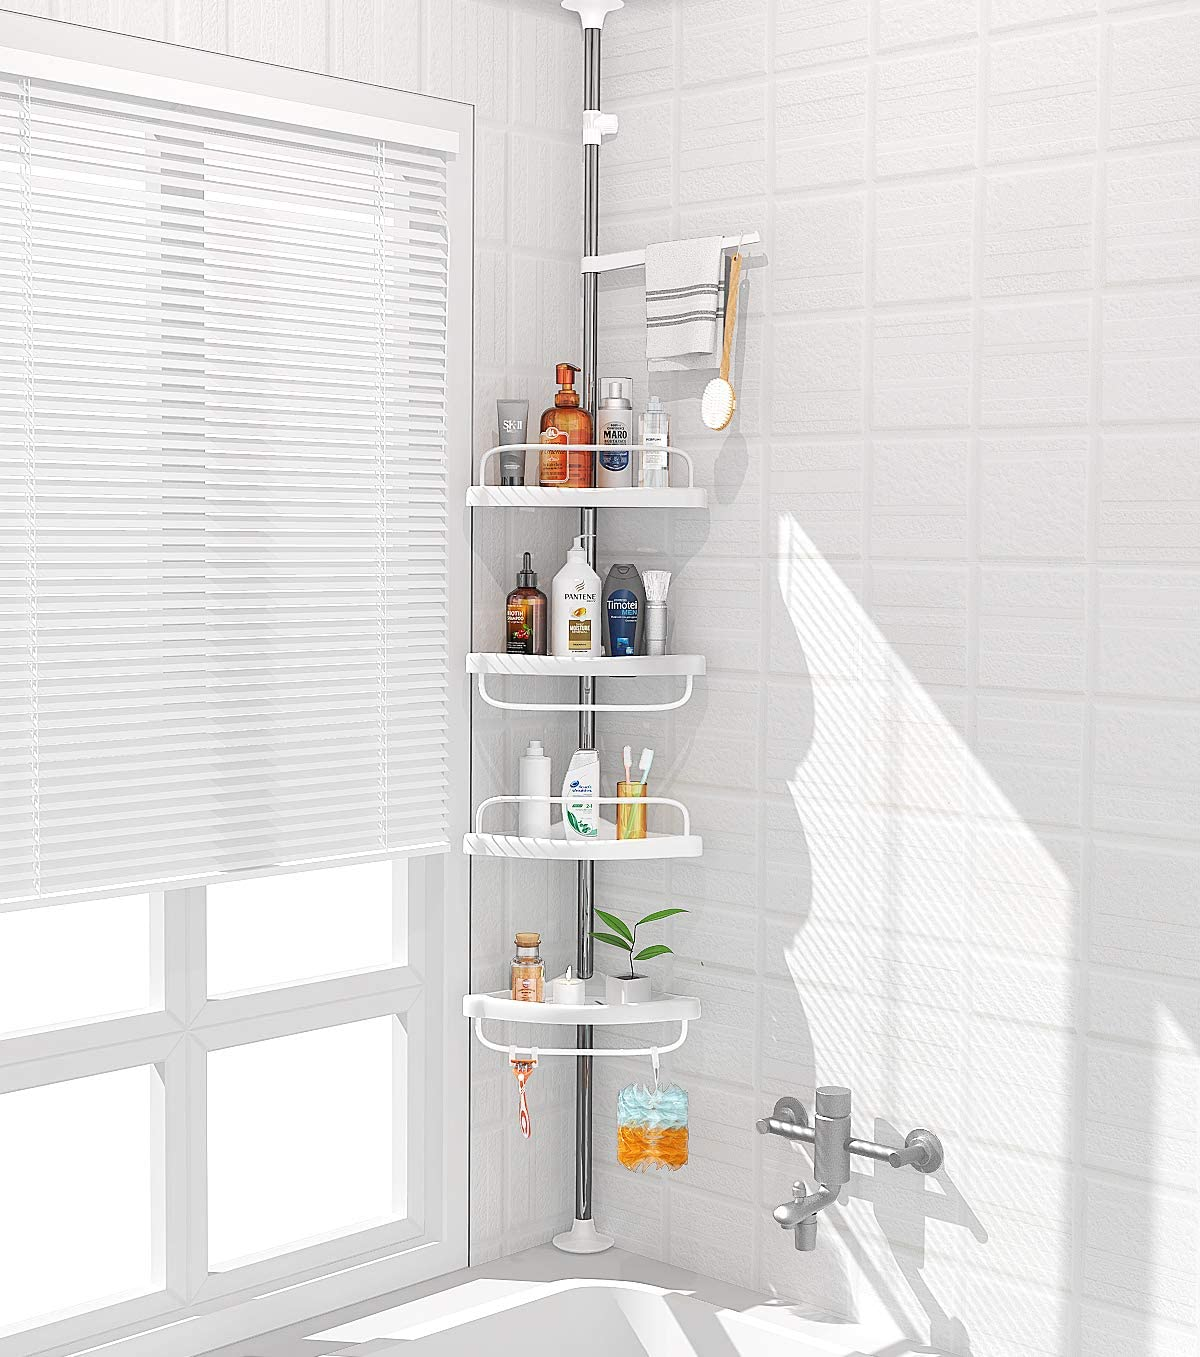 Amazon Com Adovel 4 Layer Corner Shower Caddy Adjustable Shower Shelf Constant Tension Stainless Steel Pole Organizer Rustproof 3 3 To 9 8ft Home Improvement